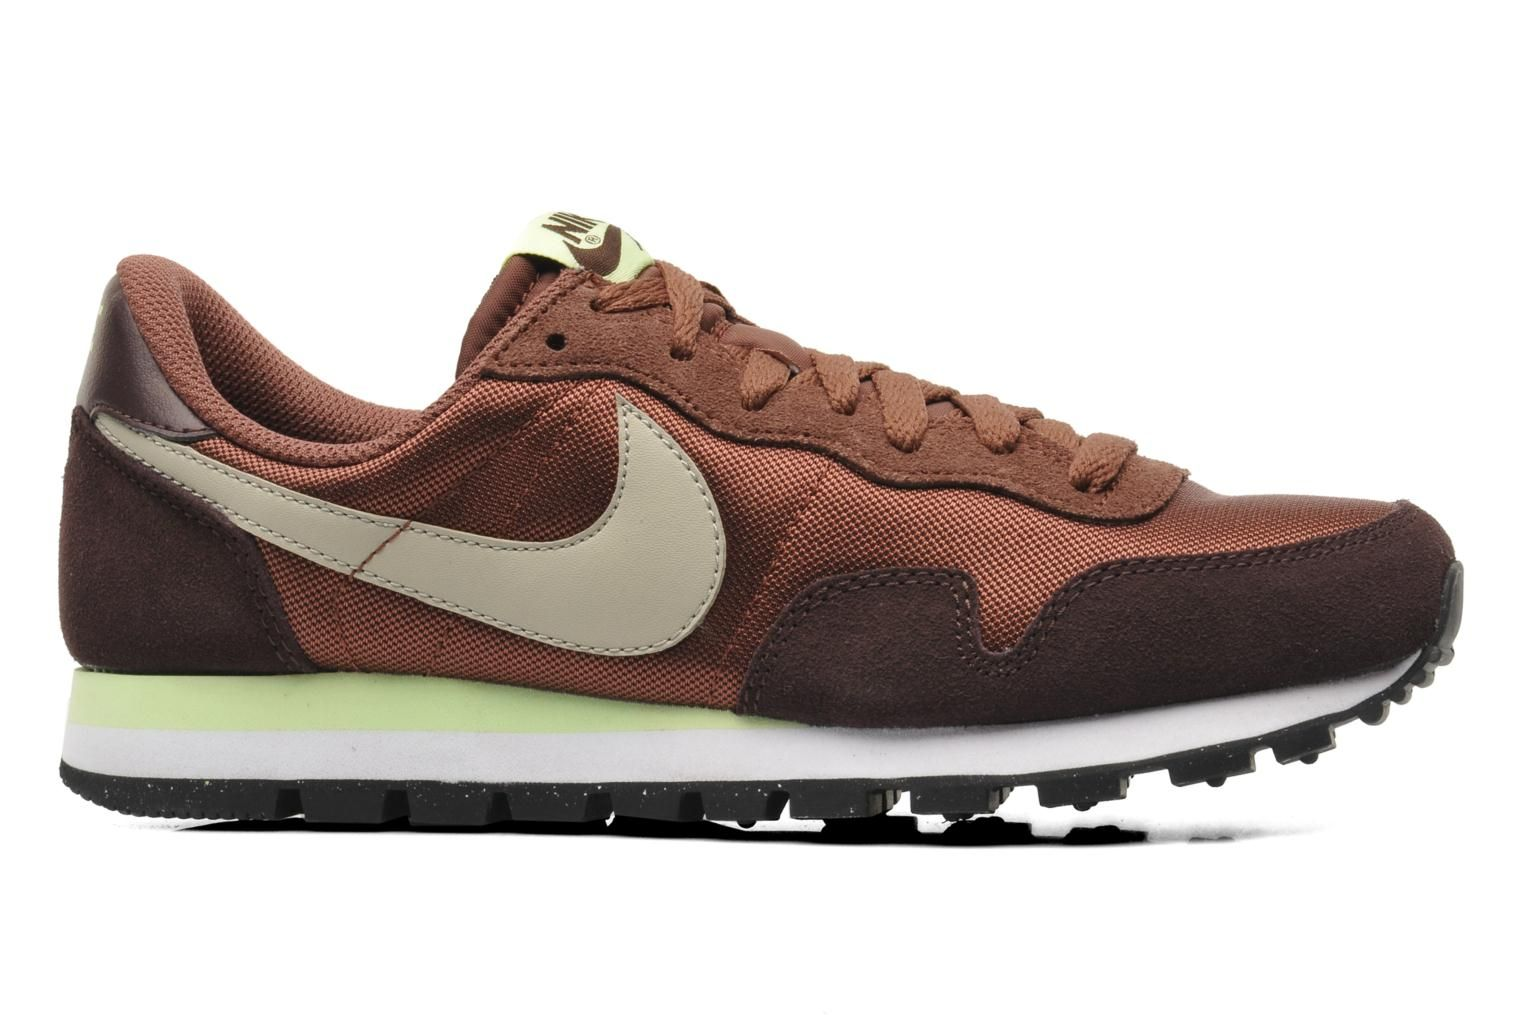 premium selection 5261e aa08e ... spain nike air pegasus 83 si marron baskets chez sarenza 215791 zapatos  extraordinarios pinterest nike air